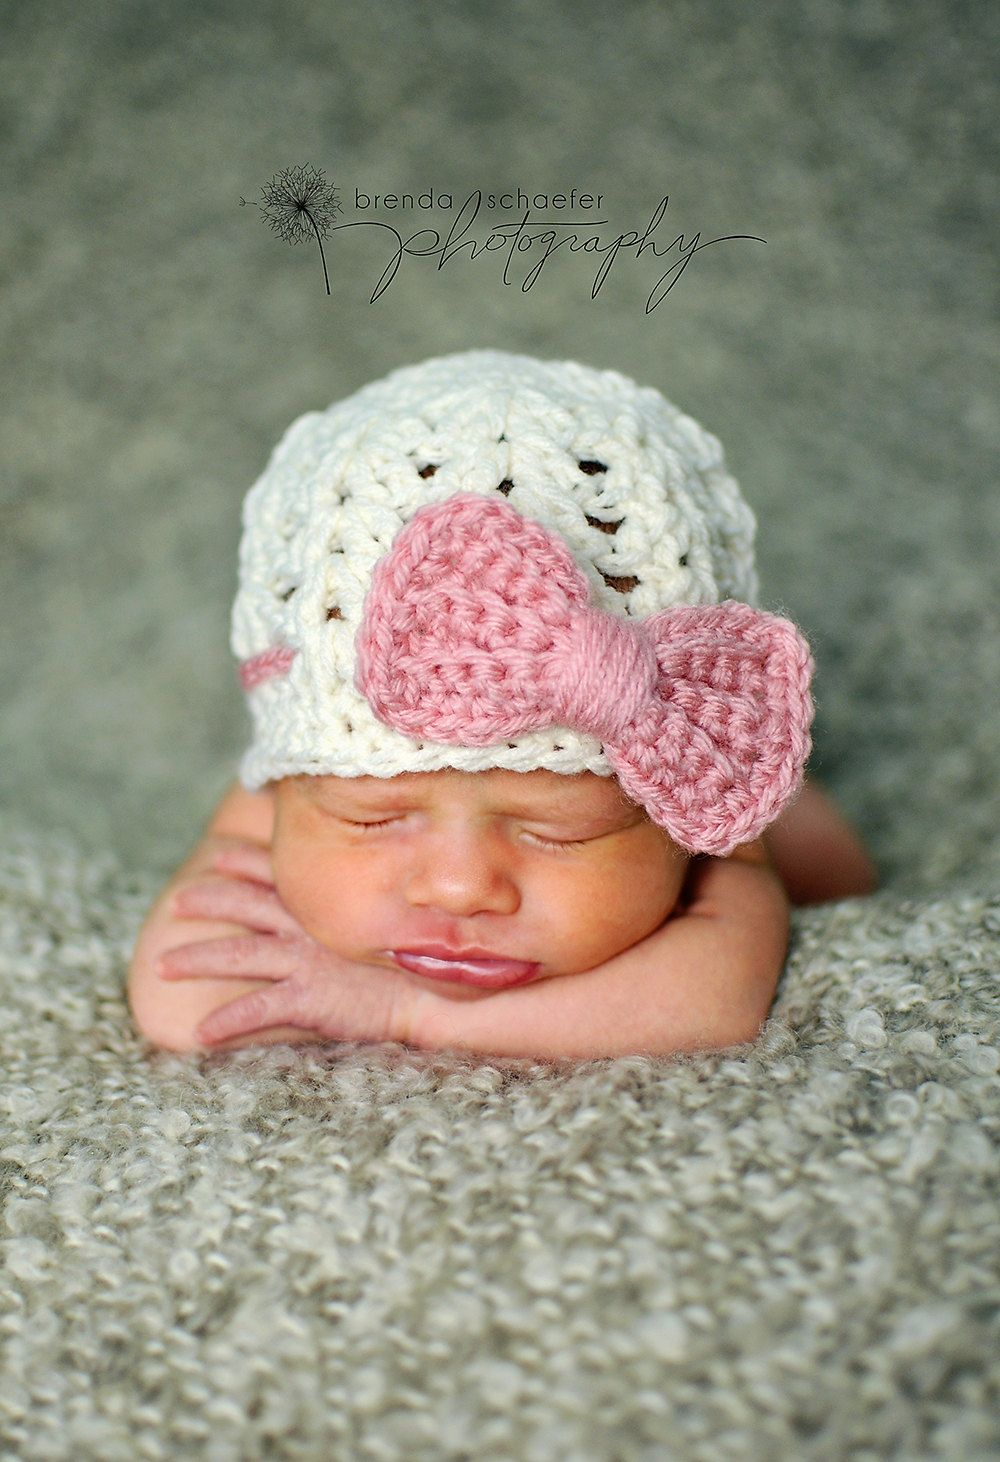 6d9a6867840 Newborn girl hat baby girl hat cream and pink bow beanie photography prop  crochet knit infant girl hat photo prop ecru - MADE TO ORDER.  24.00